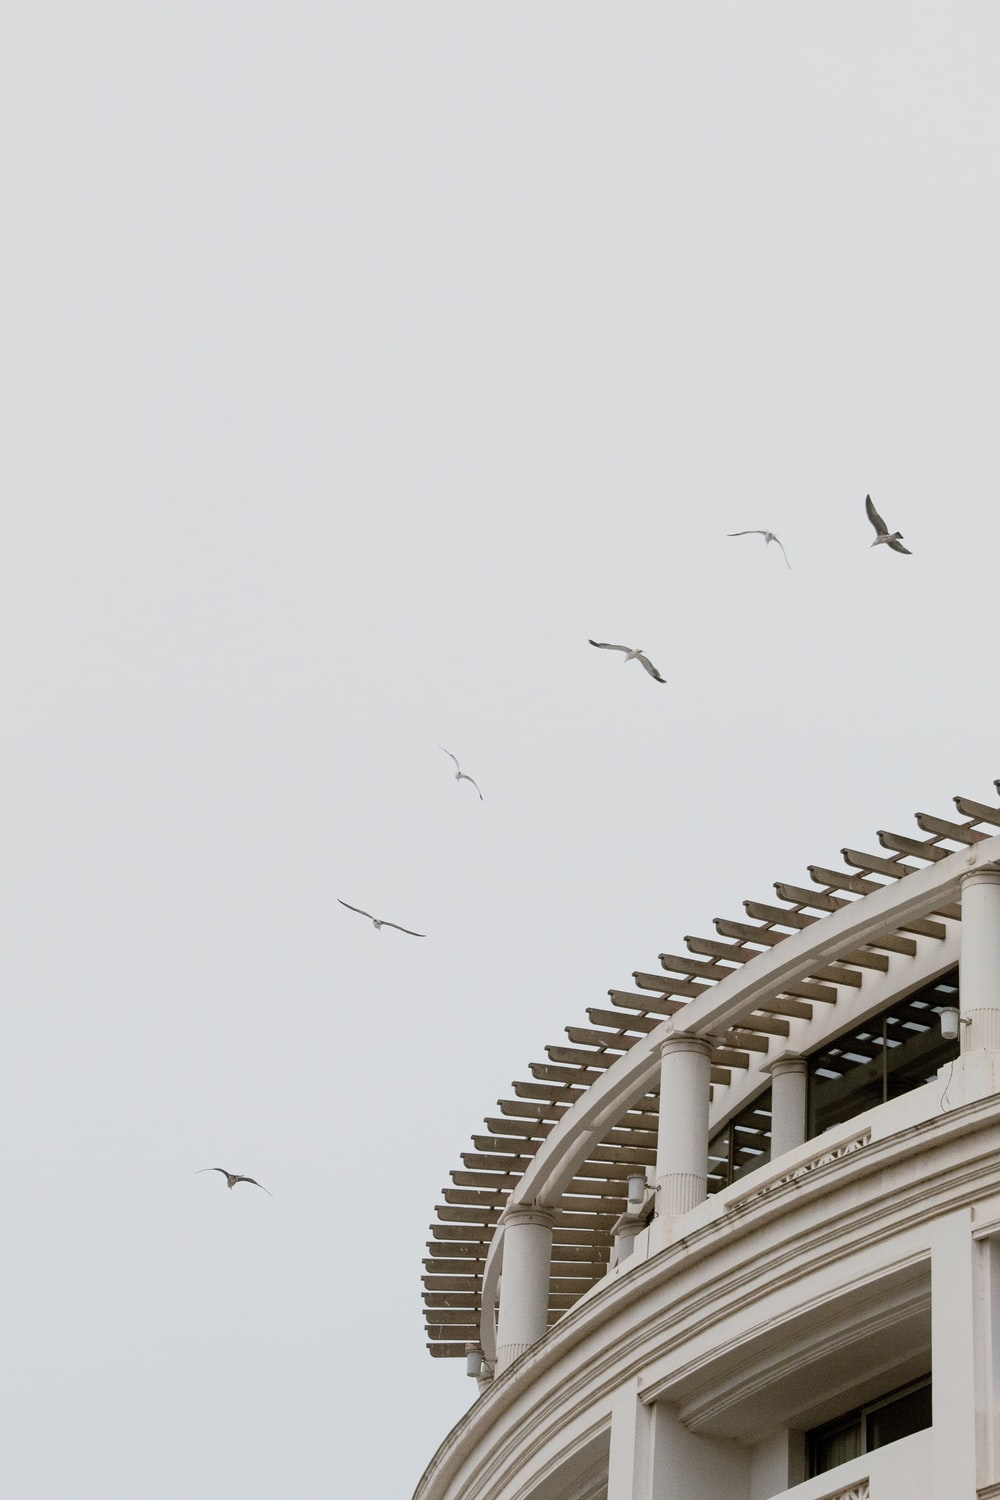 birds flying over the building